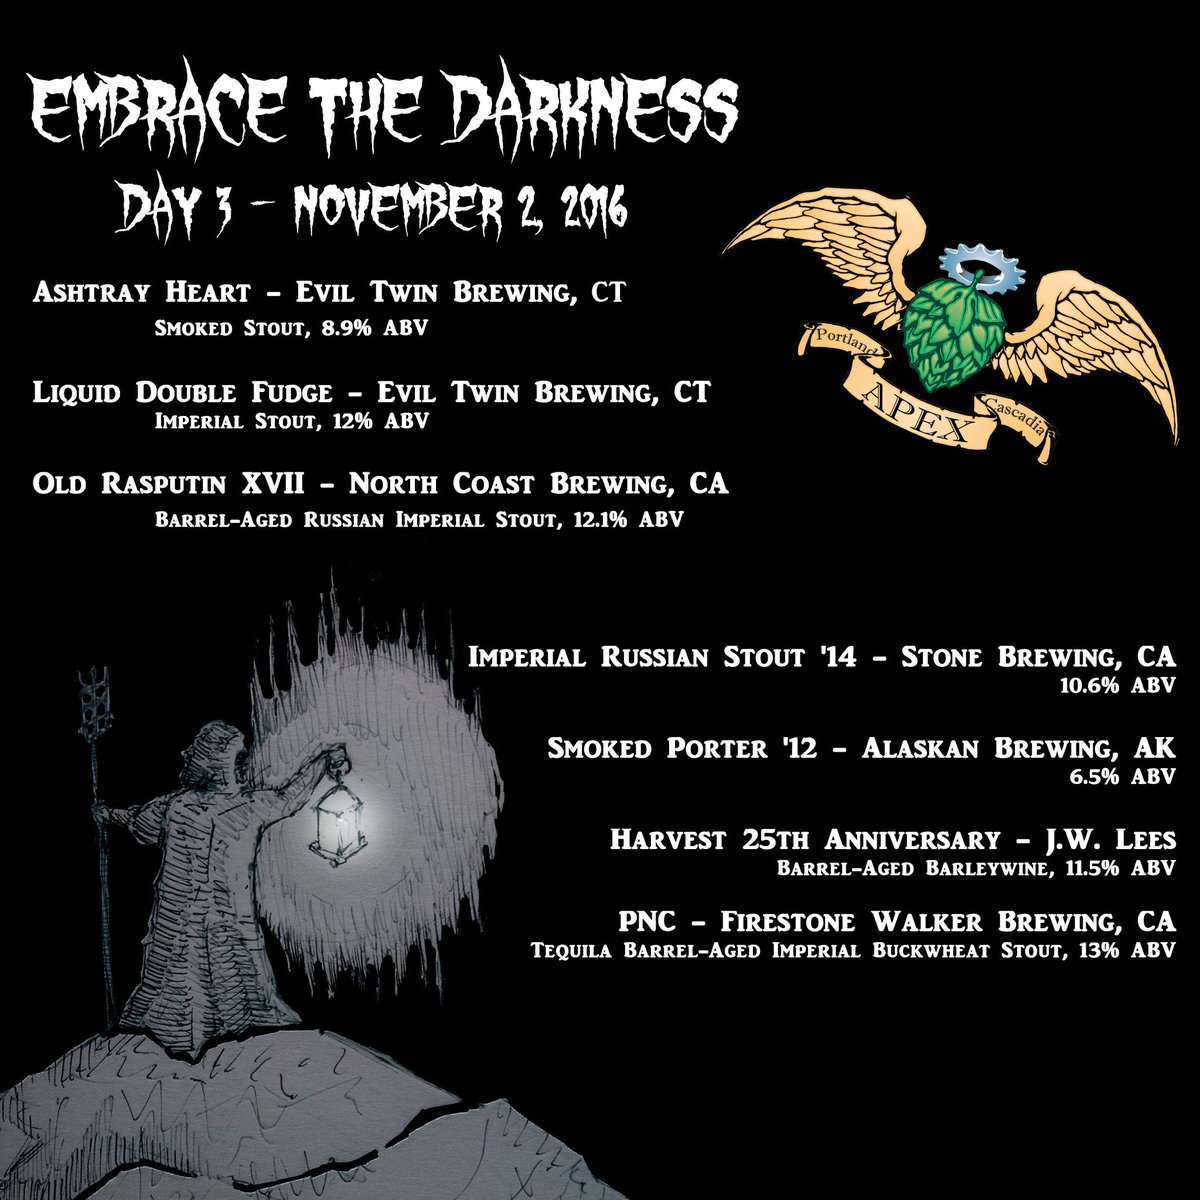 APEX Embrace the Darkness 2016 - Day 3